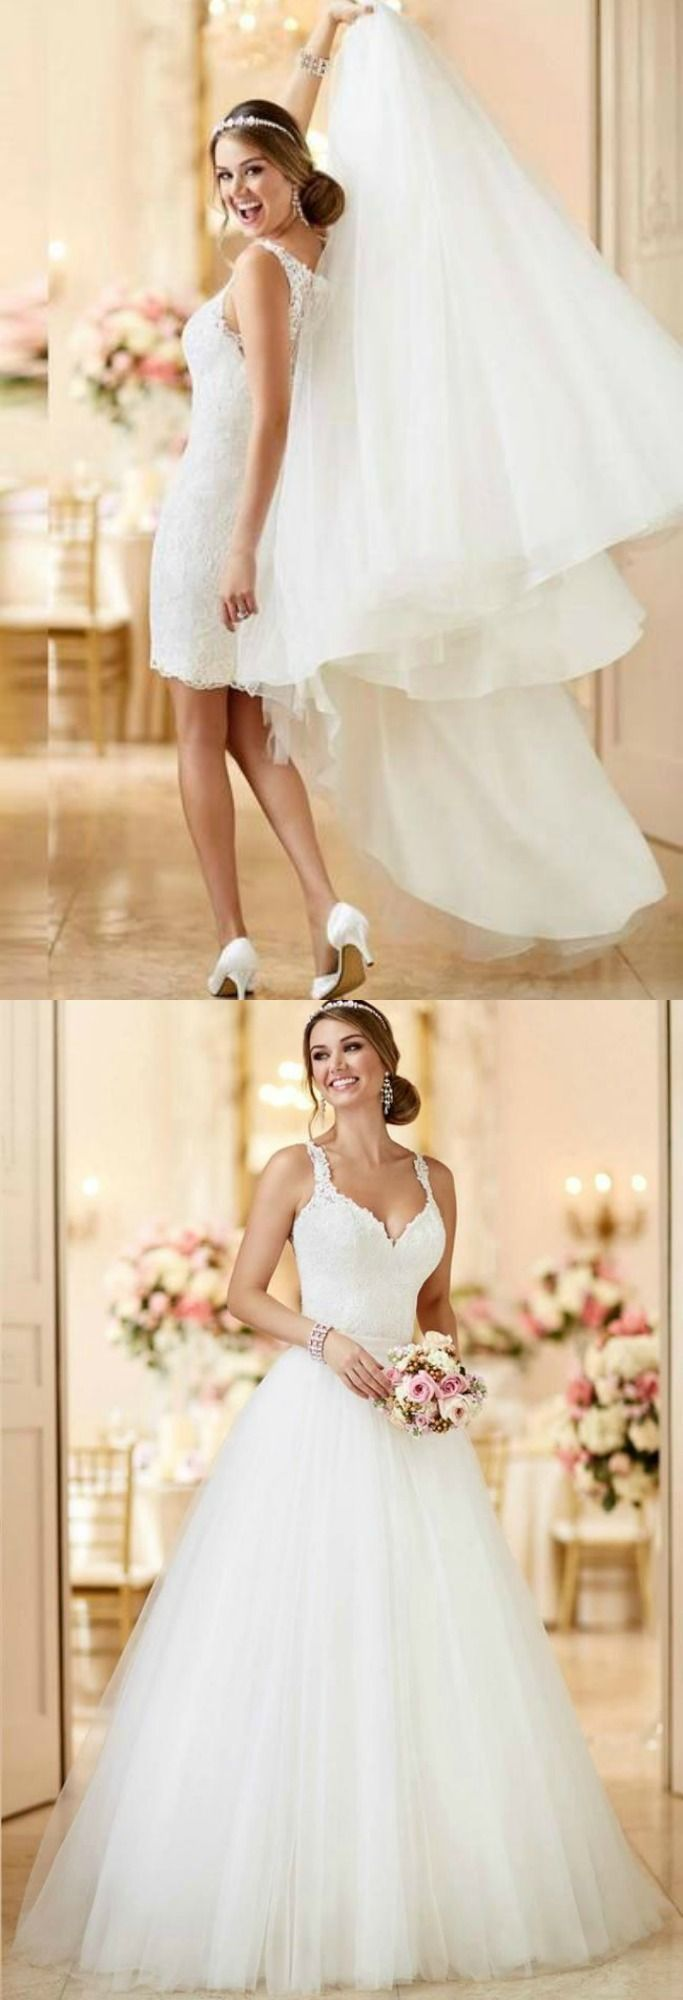 Adeline Grace. Detachable Skirt Wedding Dress. The best of both worlds is exactly what you get in the gorgeous Adeline Grace Wedding Gown!  This awe inspiring dress features a sweetheart neckline covered in lace and an empire waist to hug those curves. TheChicFind.com